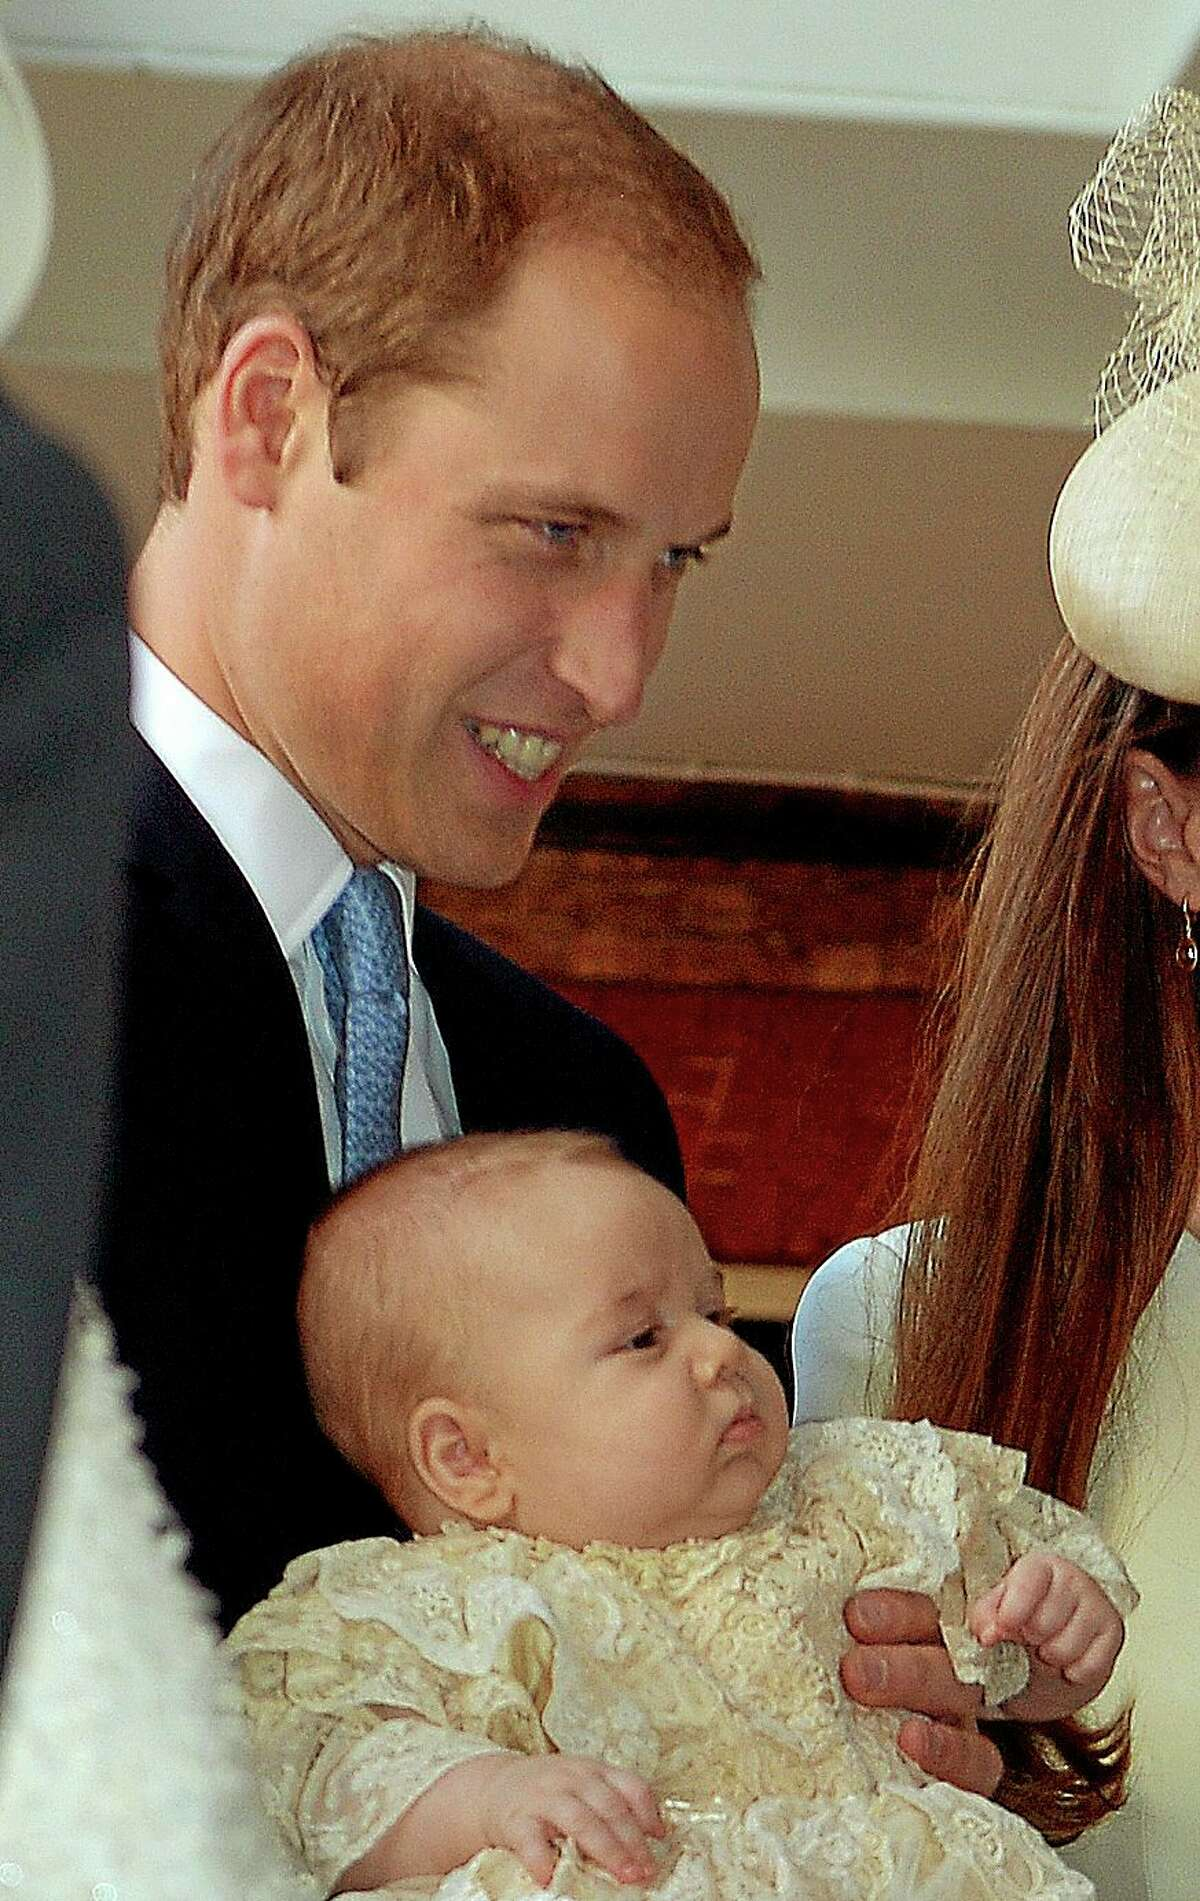 Britain's Prince William, holds his son Prince George as they arrive at the Chapel Royal in St James's Palace in London, for the christening of the three month-old Prince Wednesday Oct. 23, 2013. The 3-month-old future monarch, Prince George will be christened Wednesday with water from the River Jordan at a rare four-generation gathering of the royal family in London. (AP Photo/John Stillwell/Pool)